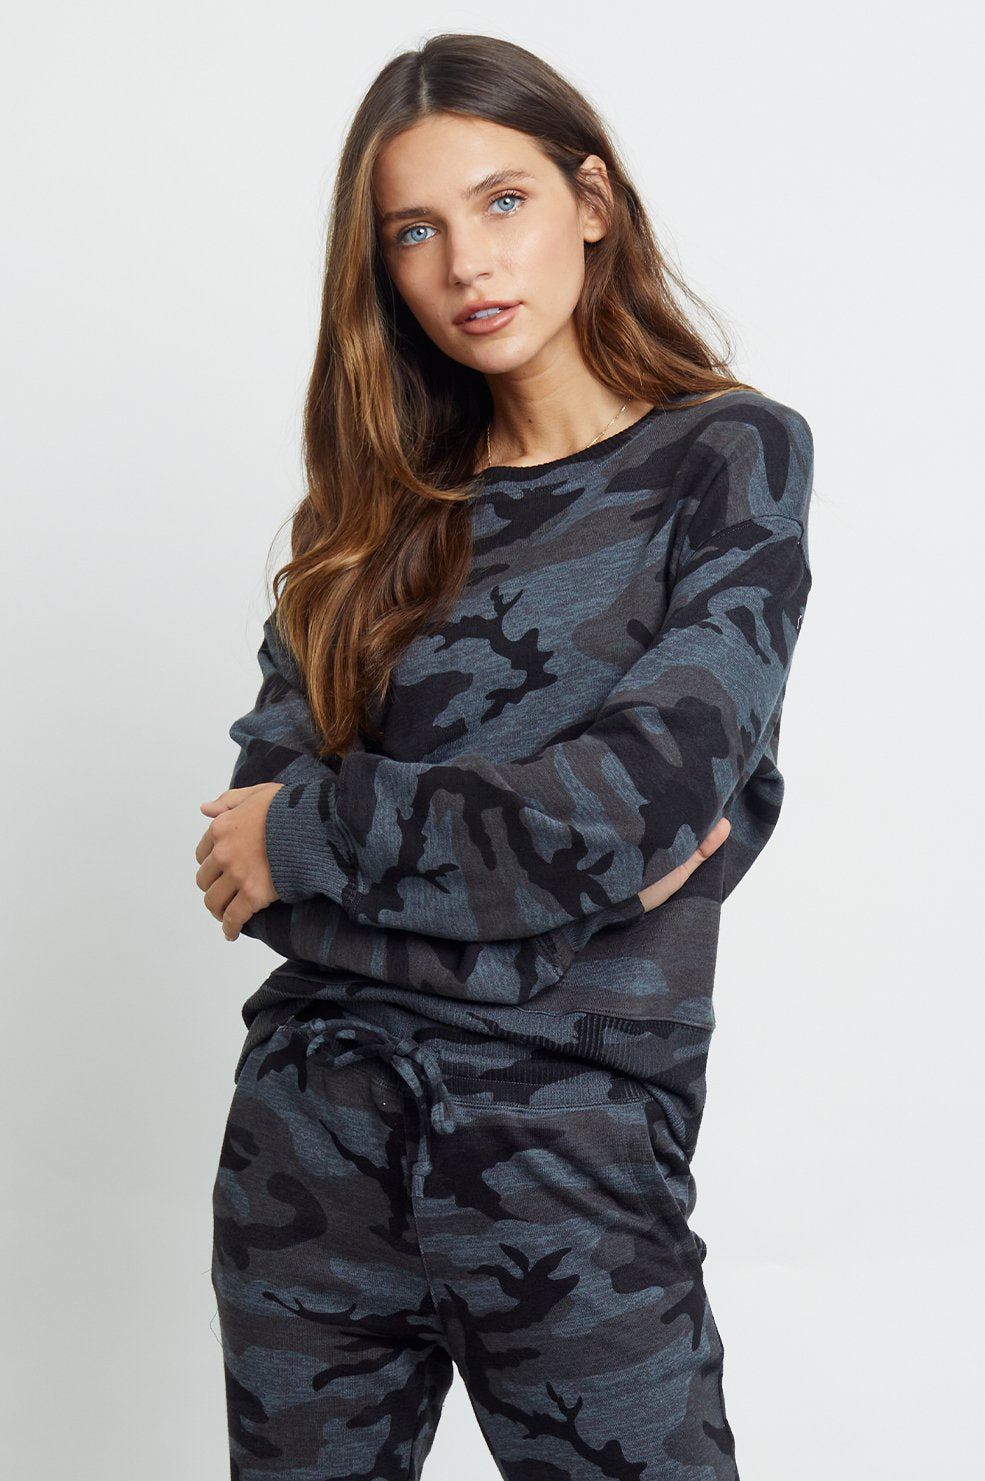 Ramona Sweatshirt in Iron Camo